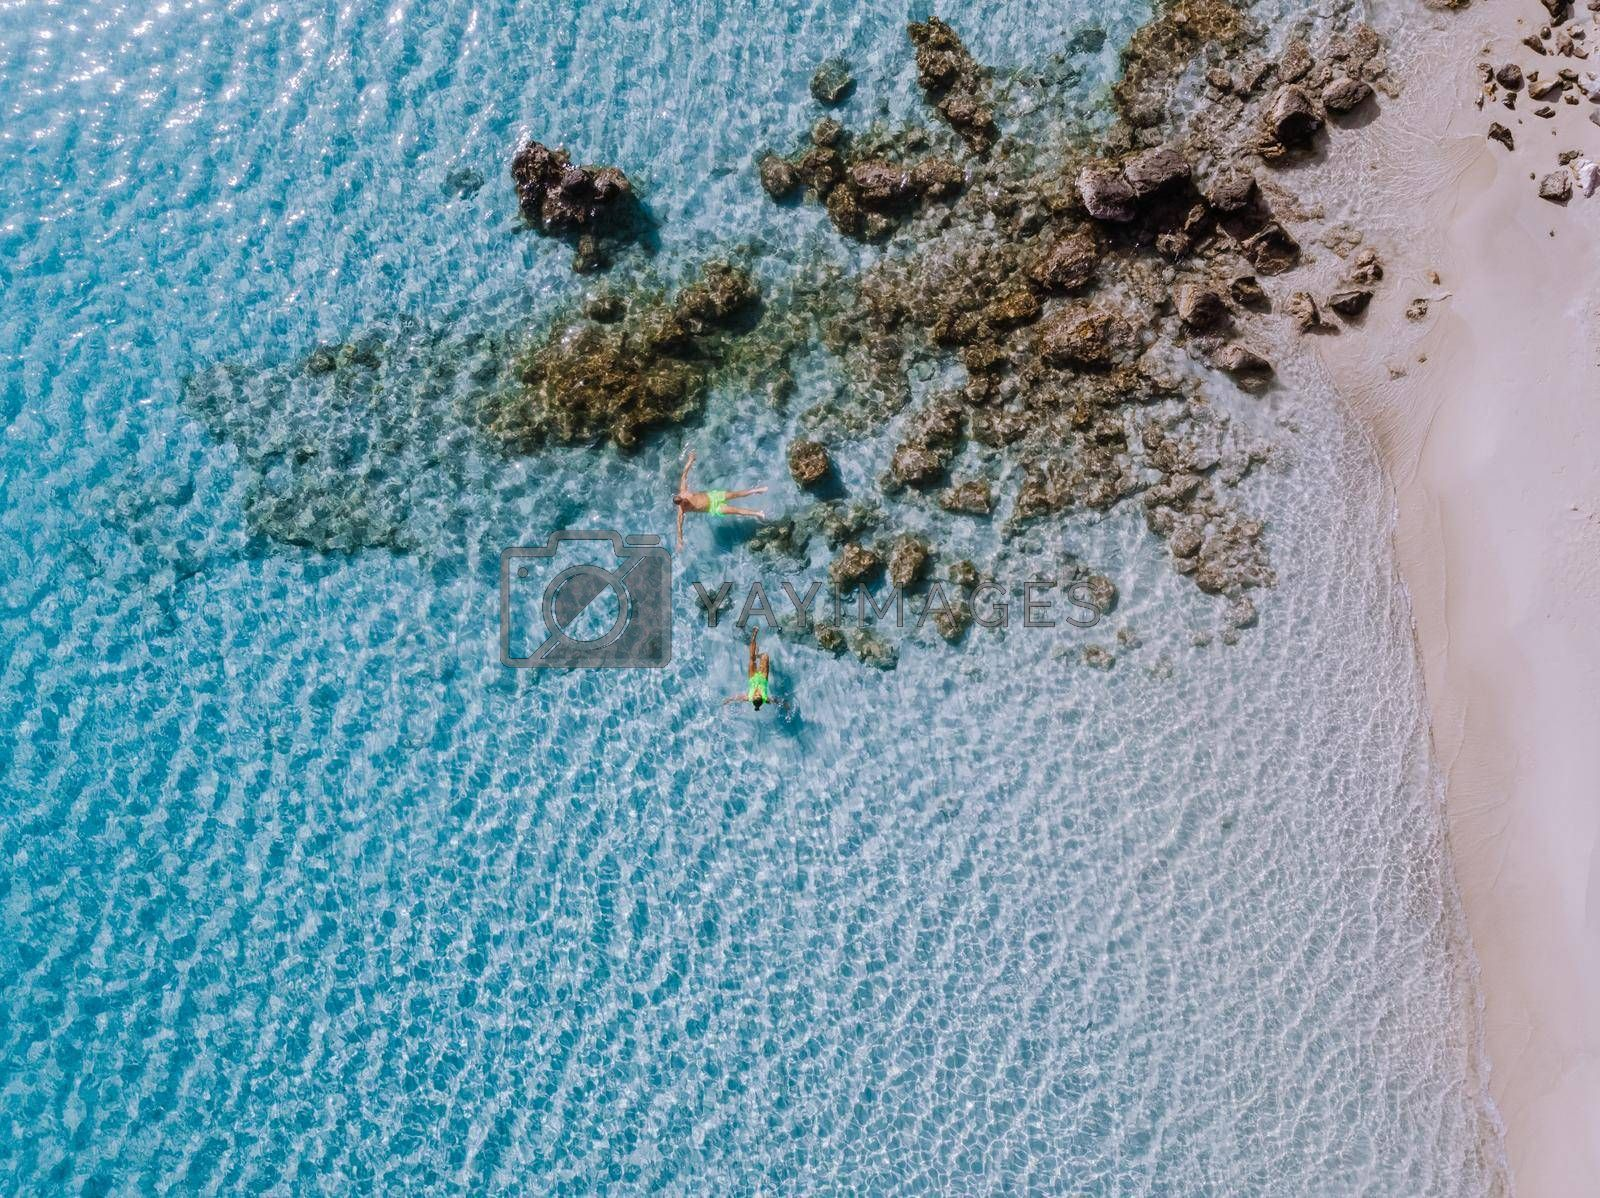 Tropical beach of Voulisma beach, Istron, Crete, Greece ,Most beautiful beaches of Crete island -Istron bay near Agios Nikolaos drone aerial view, woman in swimsuit on the beach, couple on vacation Greece snorkeling in the ocean